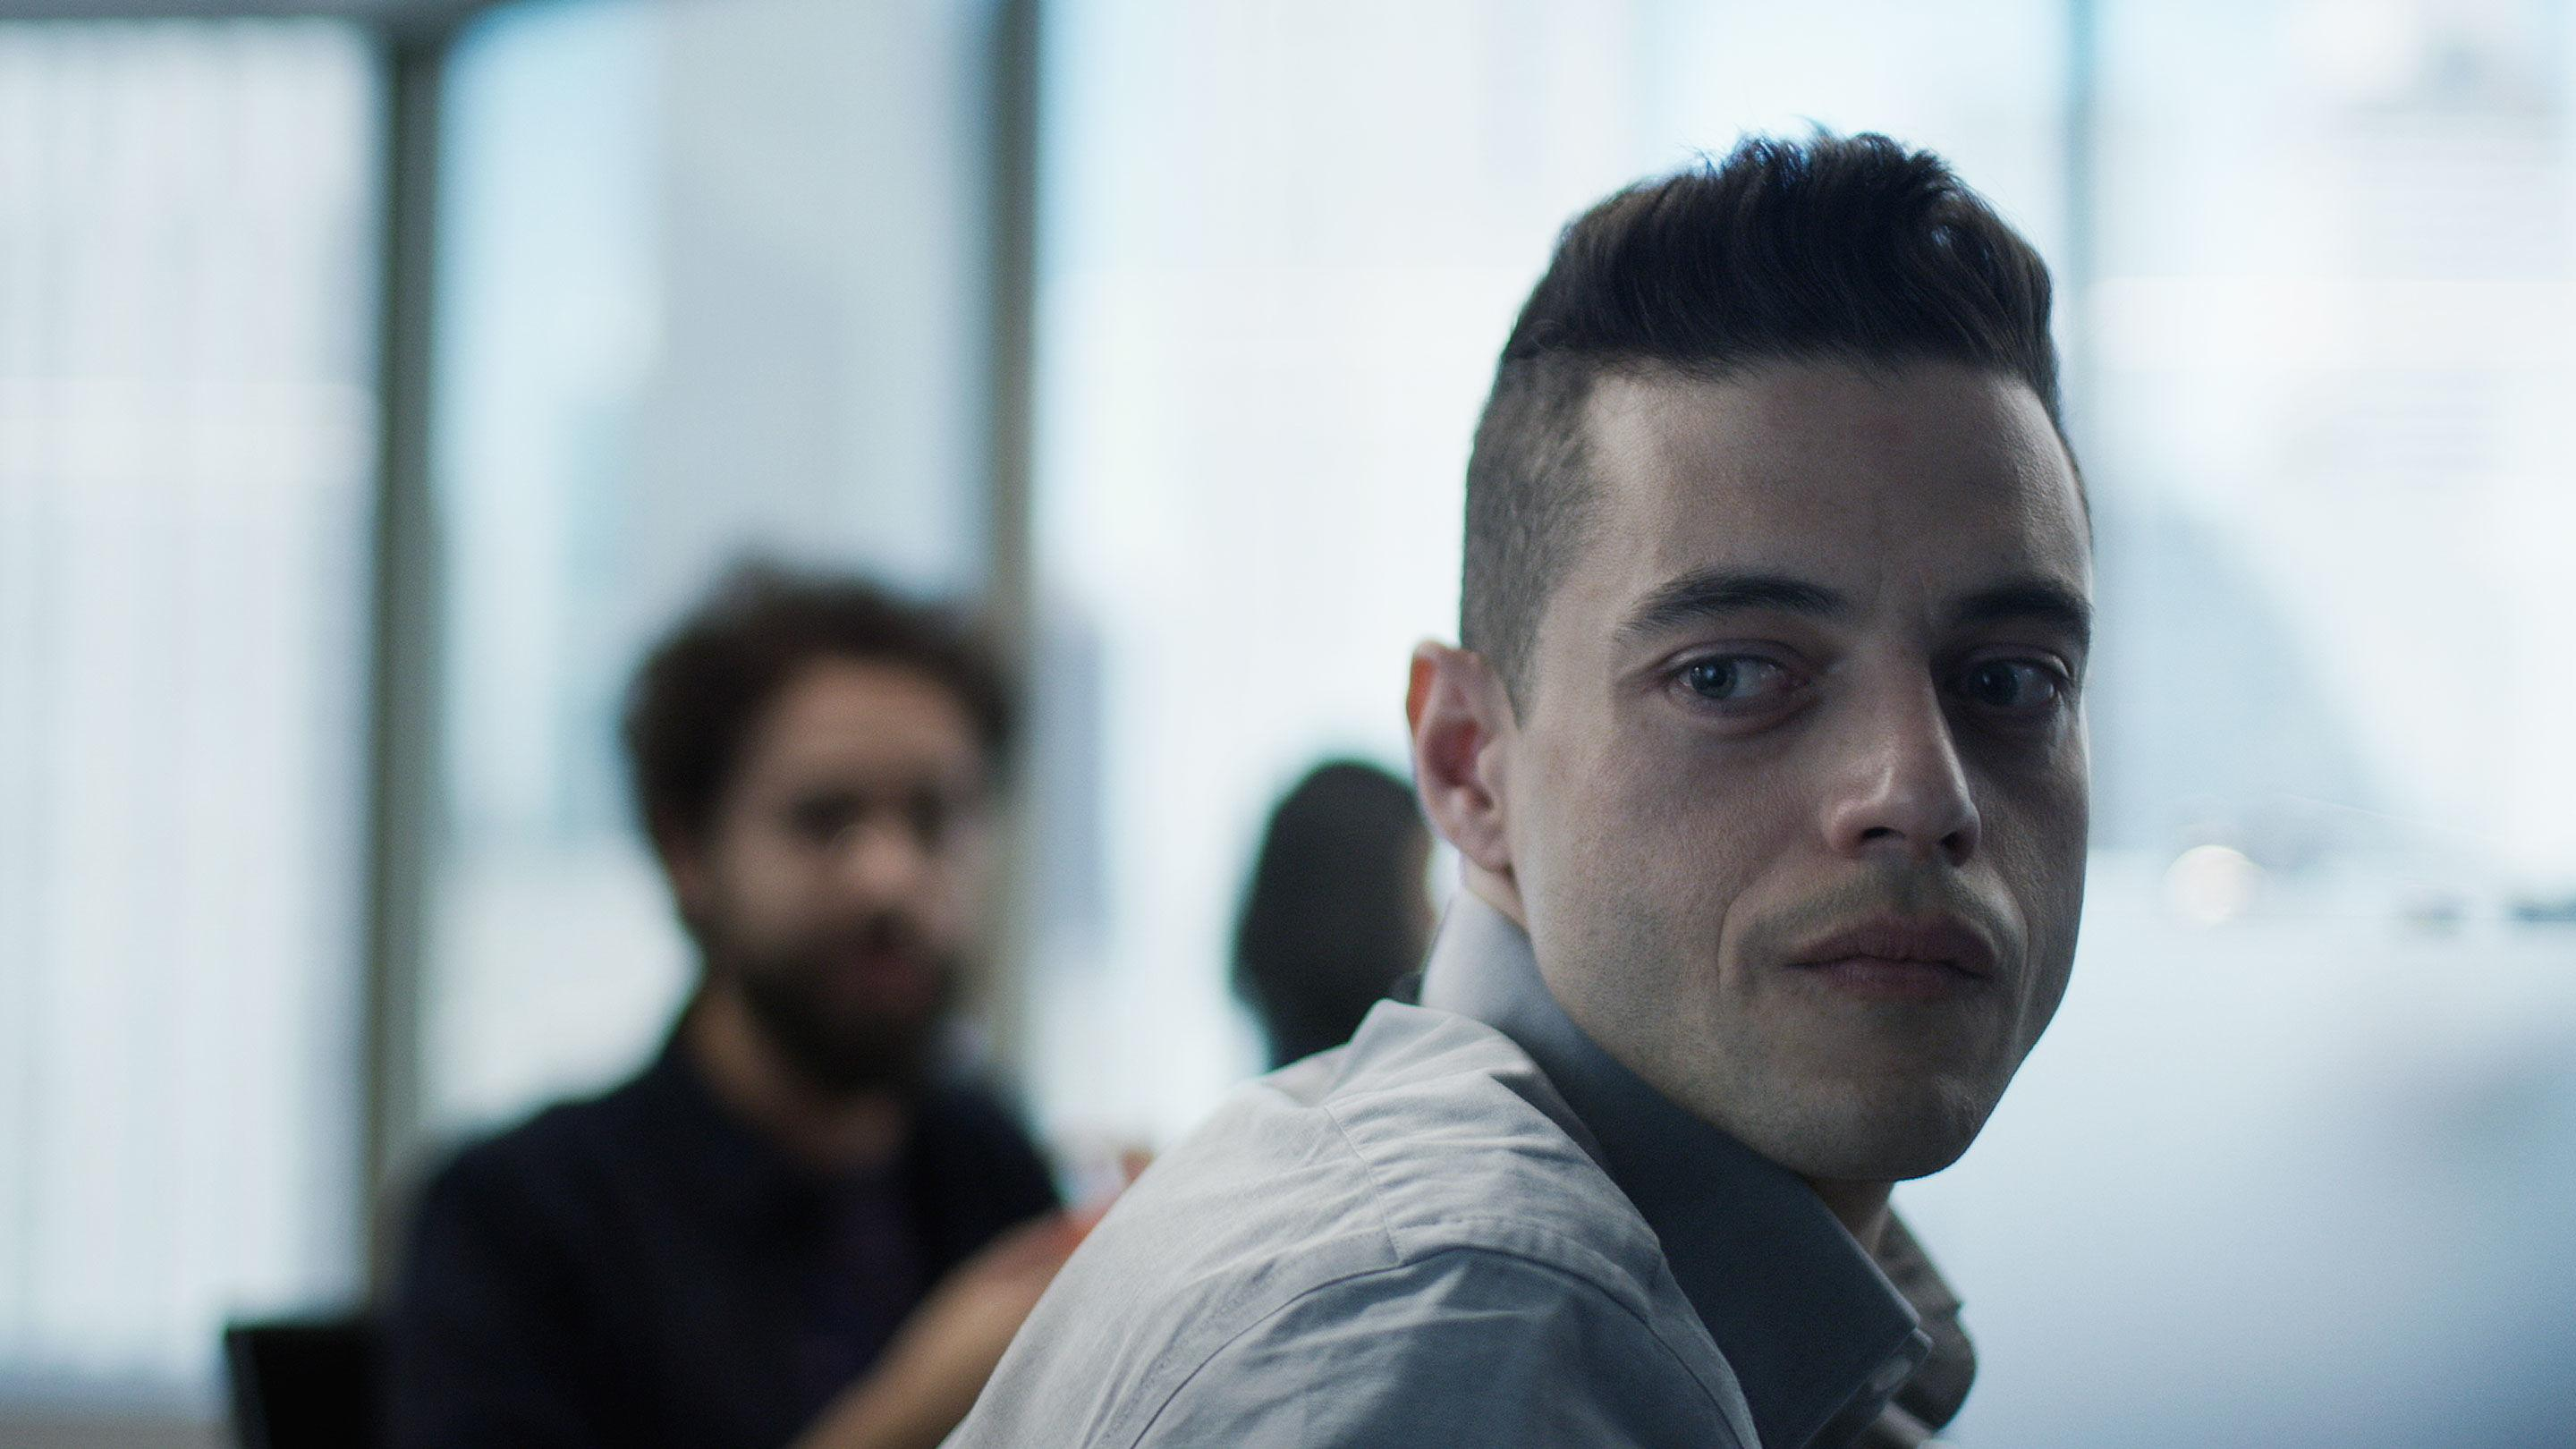 Mr Robot - Image from Amazon Prime